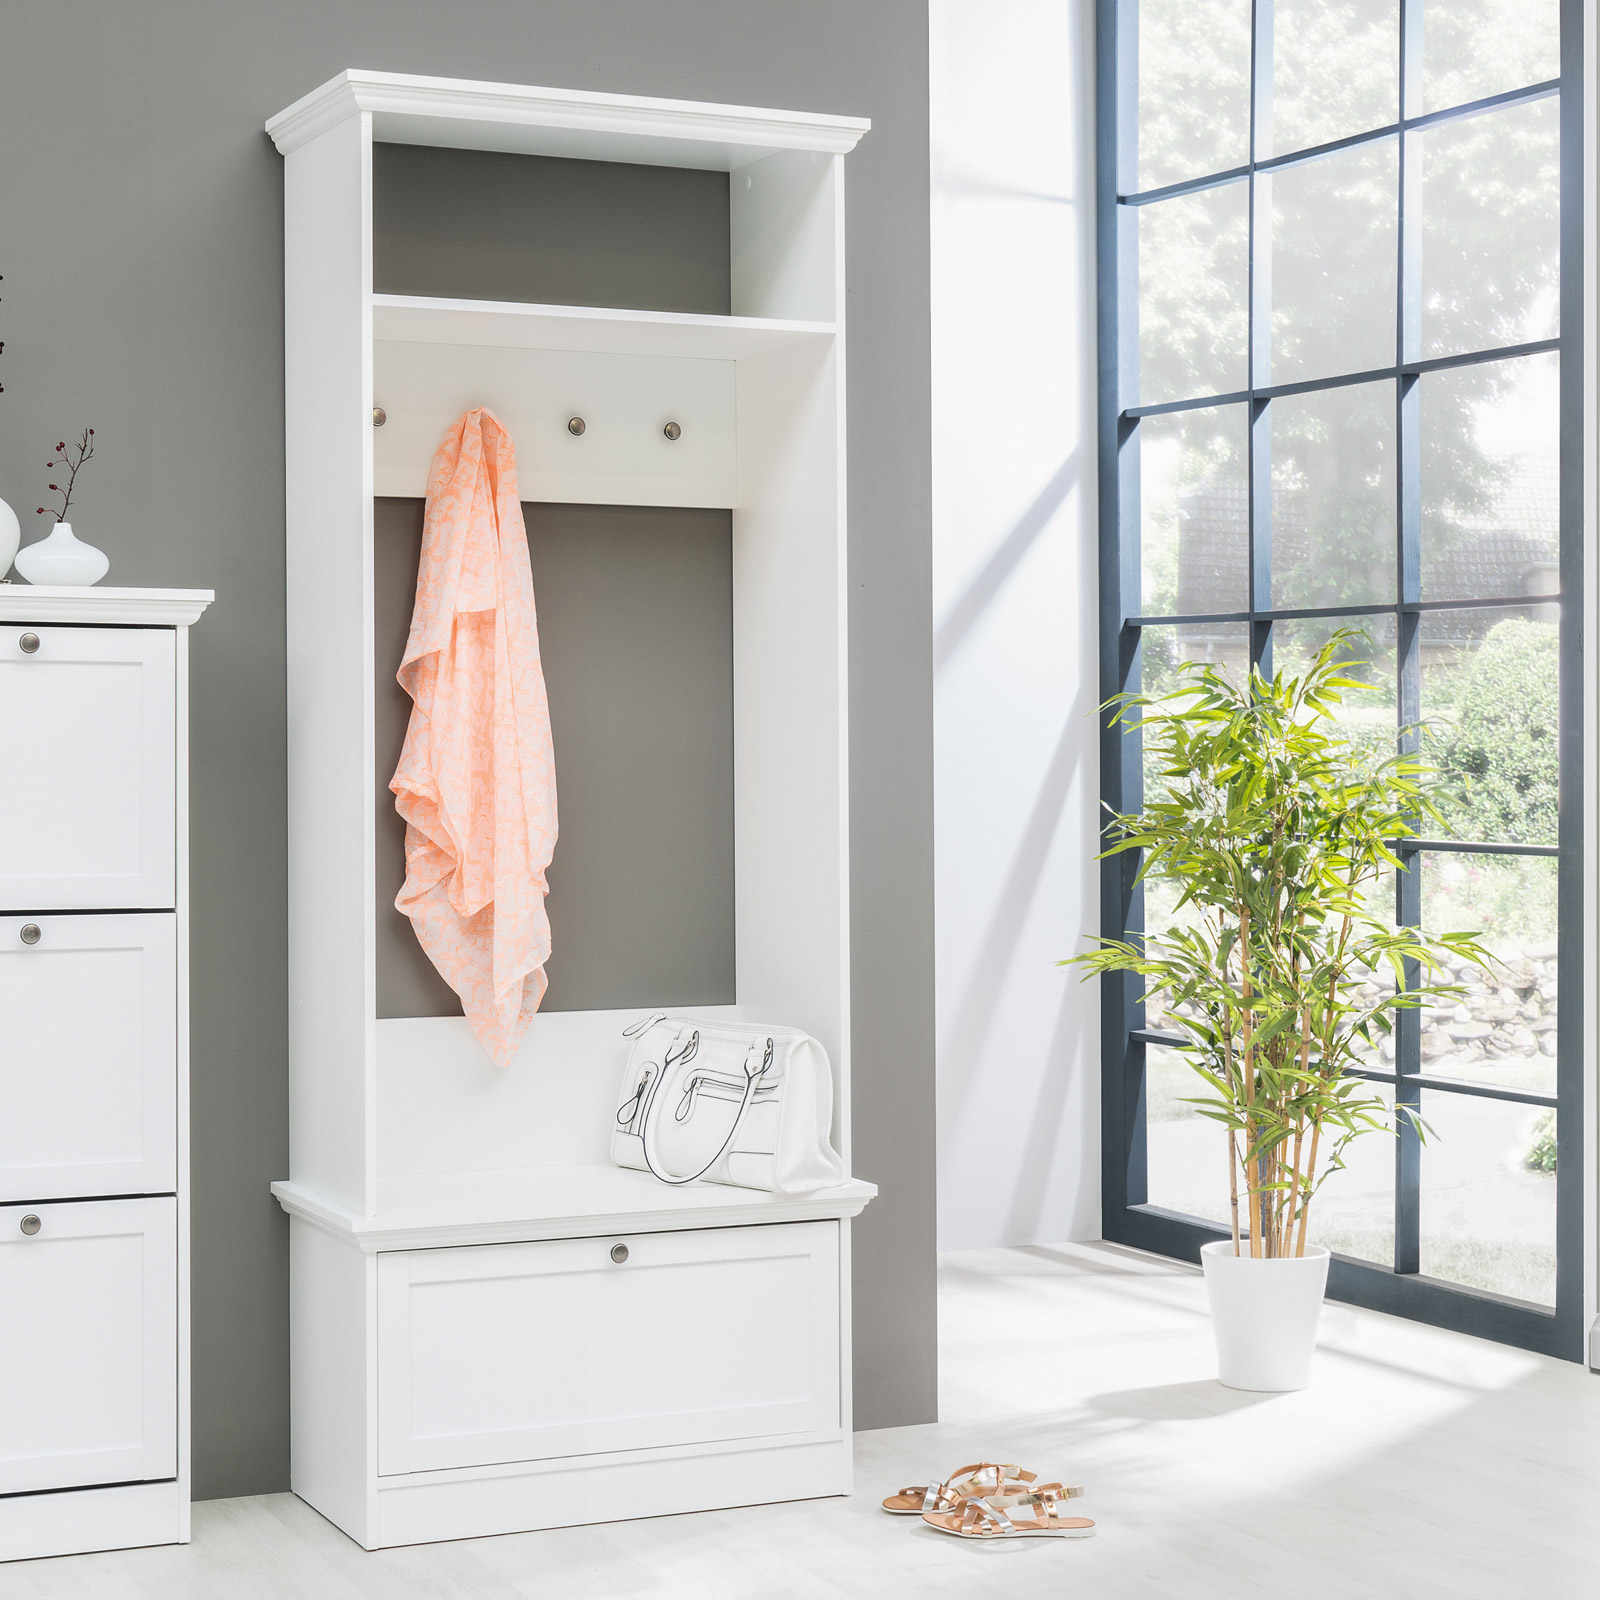 kompaktgarderobe landwood garderobe flur diele in wei mit 4 haken landhausstil ebay. Black Bedroom Furniture Sets. Home Design Ideas